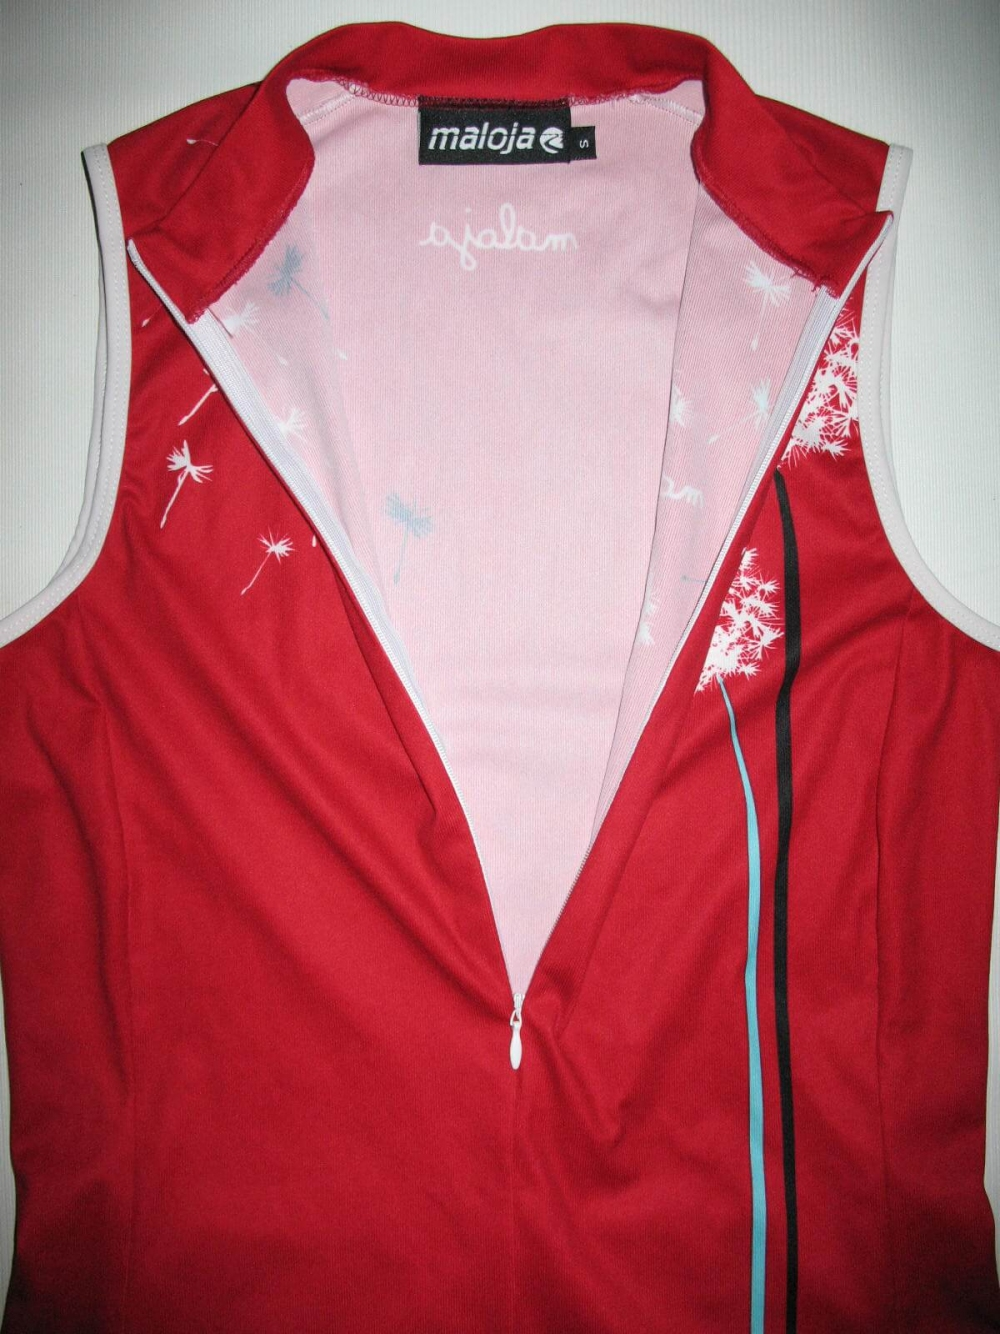 Веломайка MALOJA sleeveless cycling jersey lady (размер S) - 3